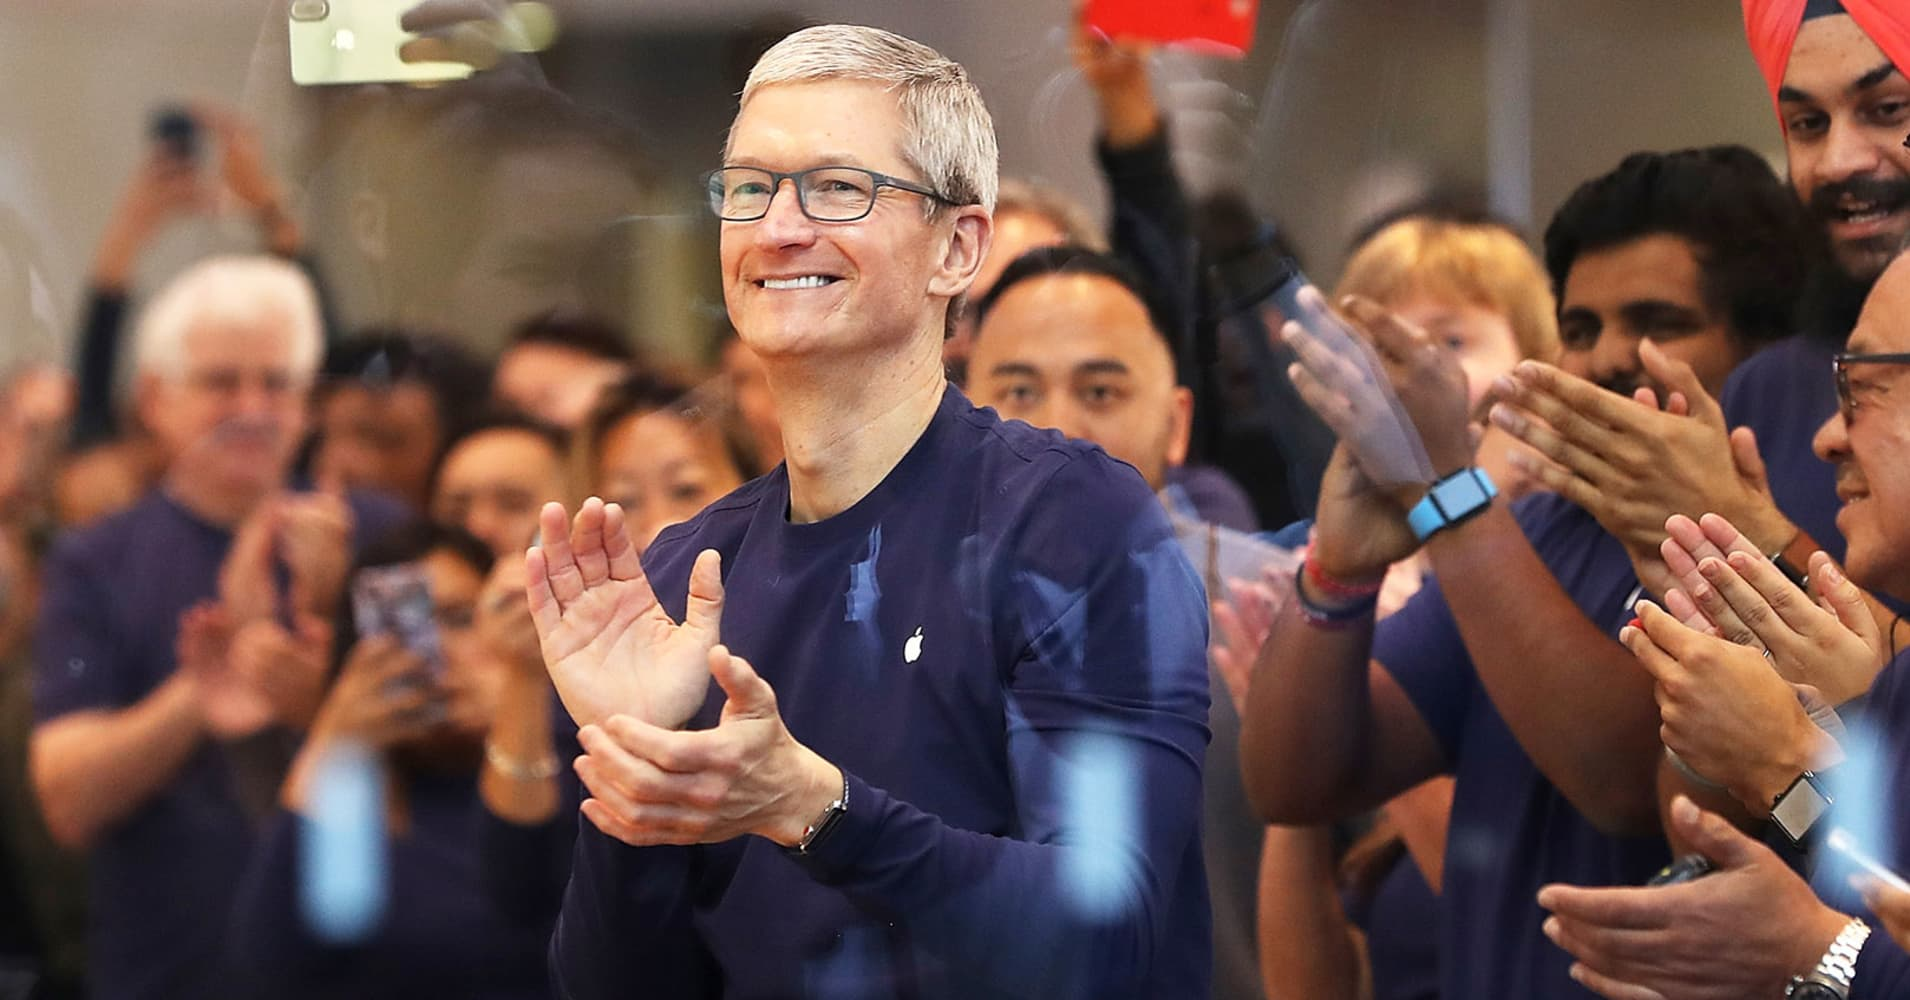 Apple has gained nearly $285 billion in market cap this year, but some see trouble ahead